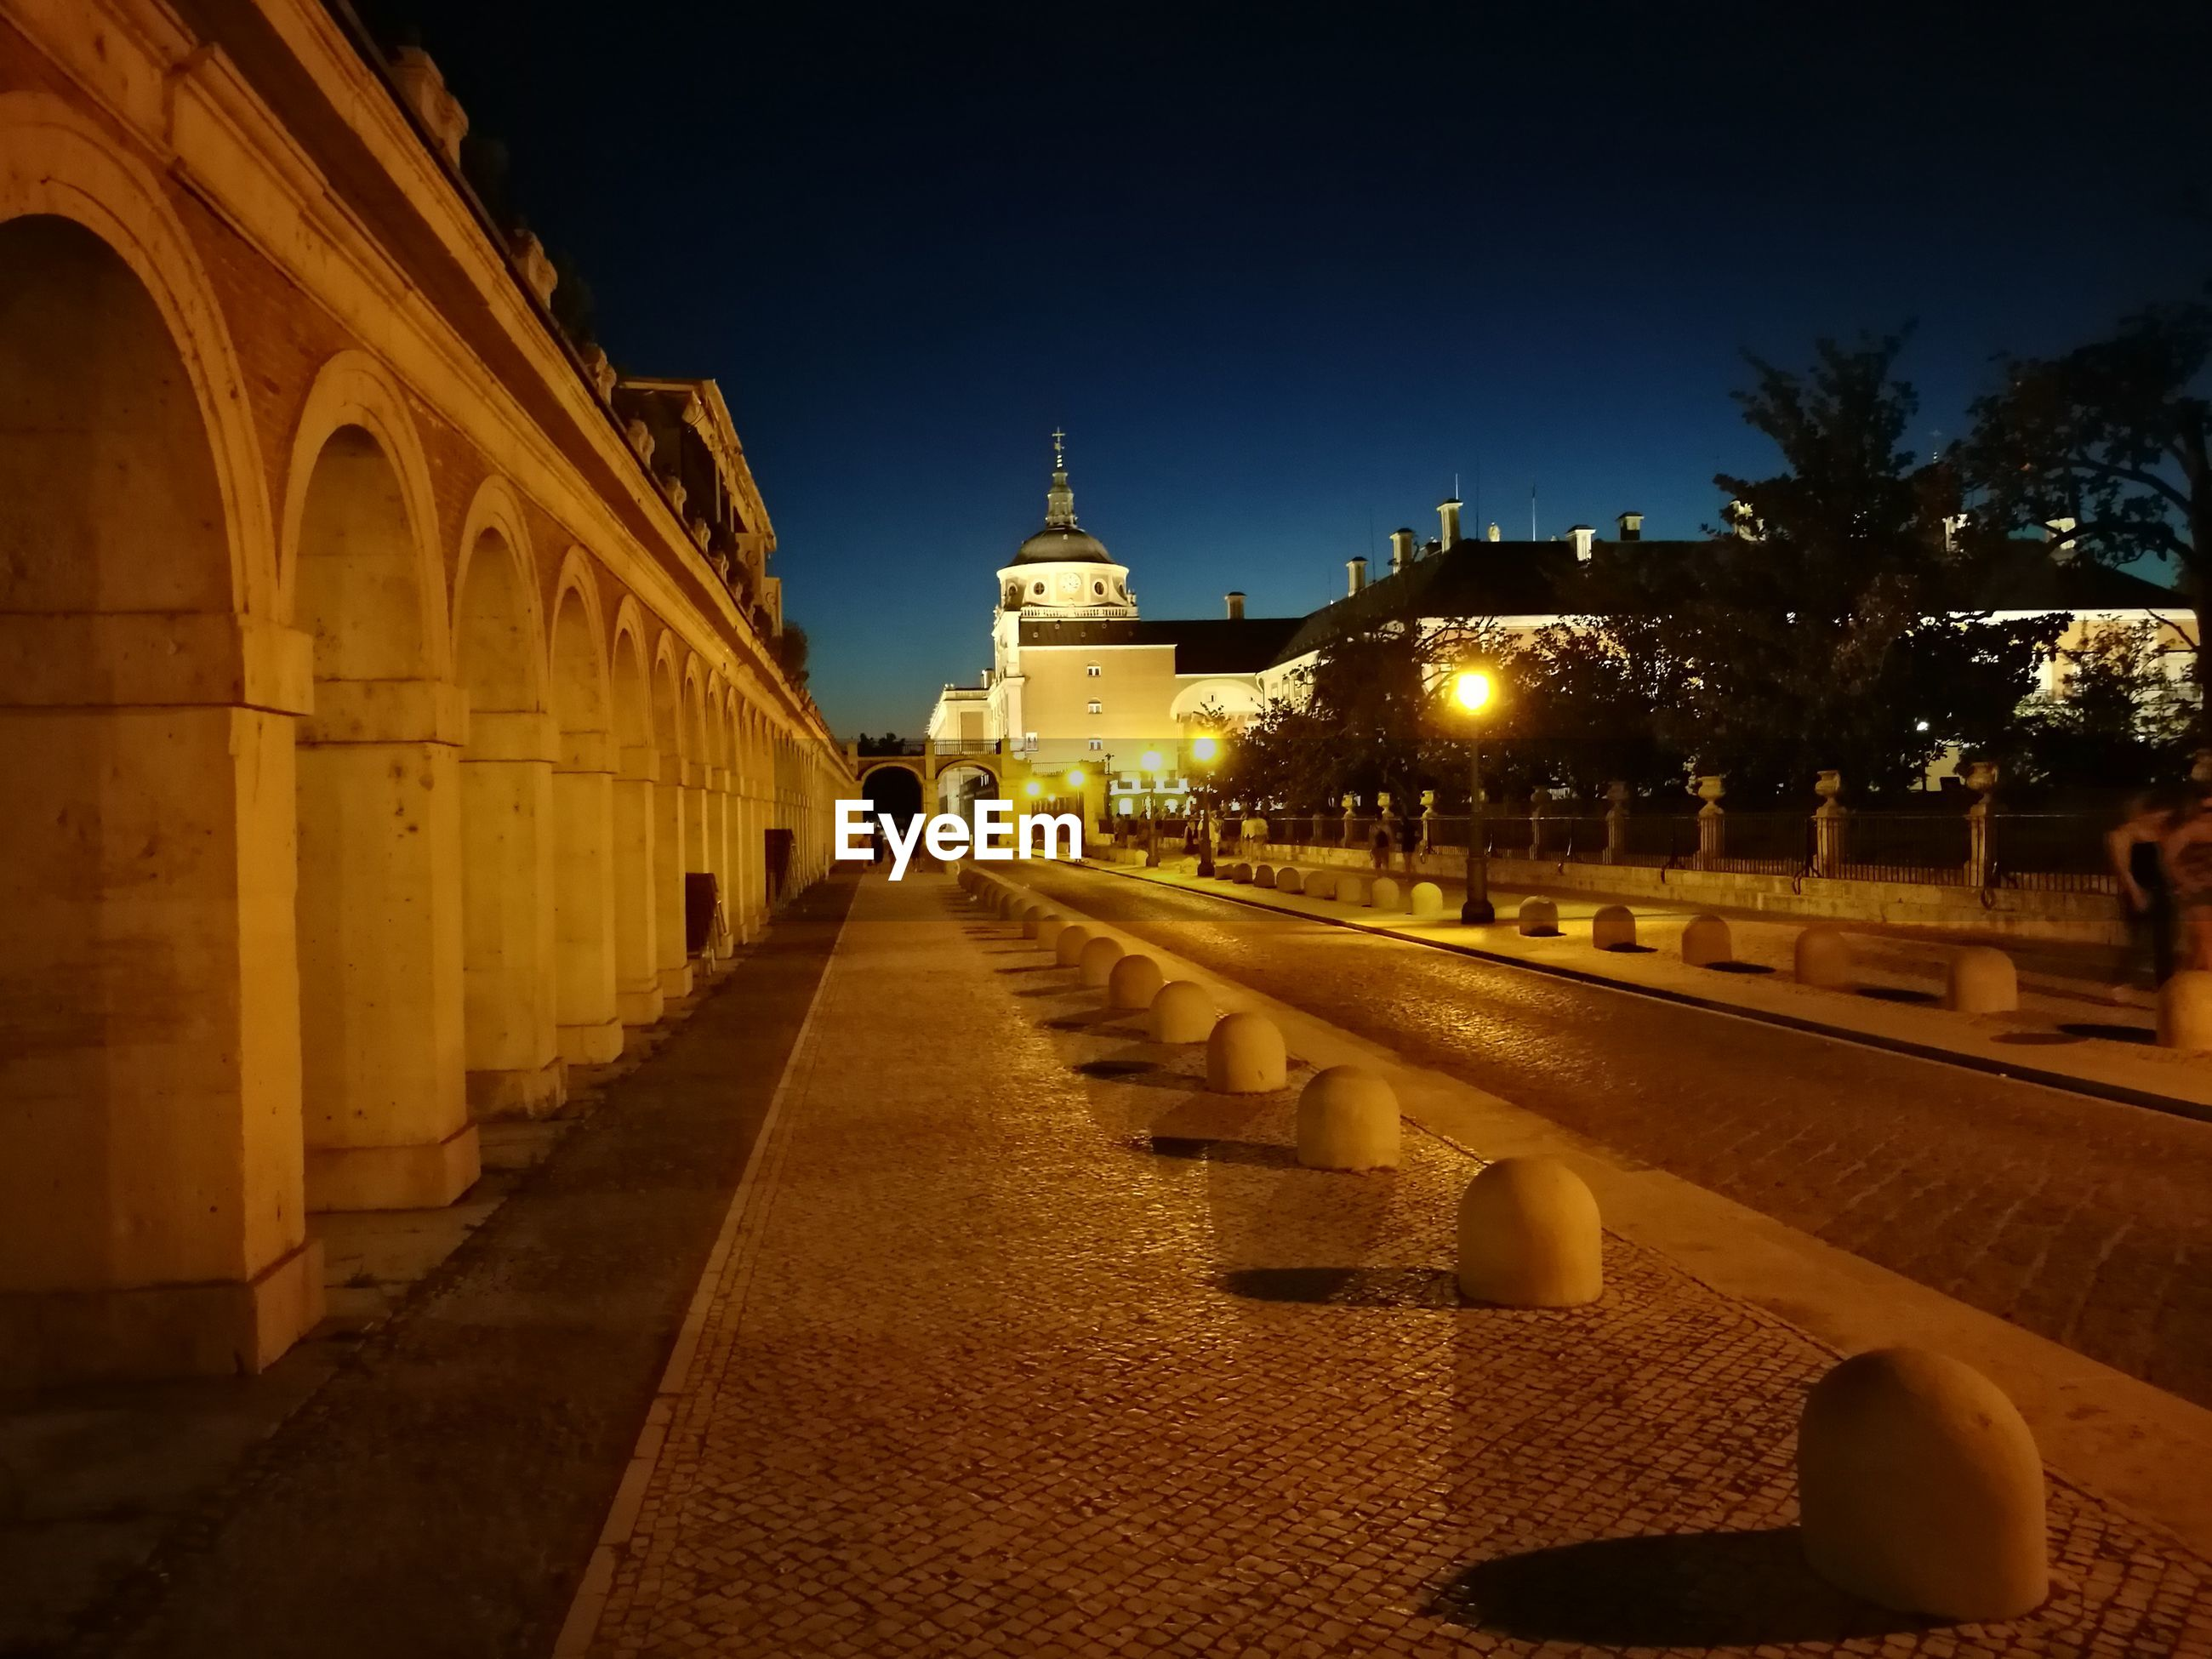 Footpath leading towards royal palace of aranjuez at night